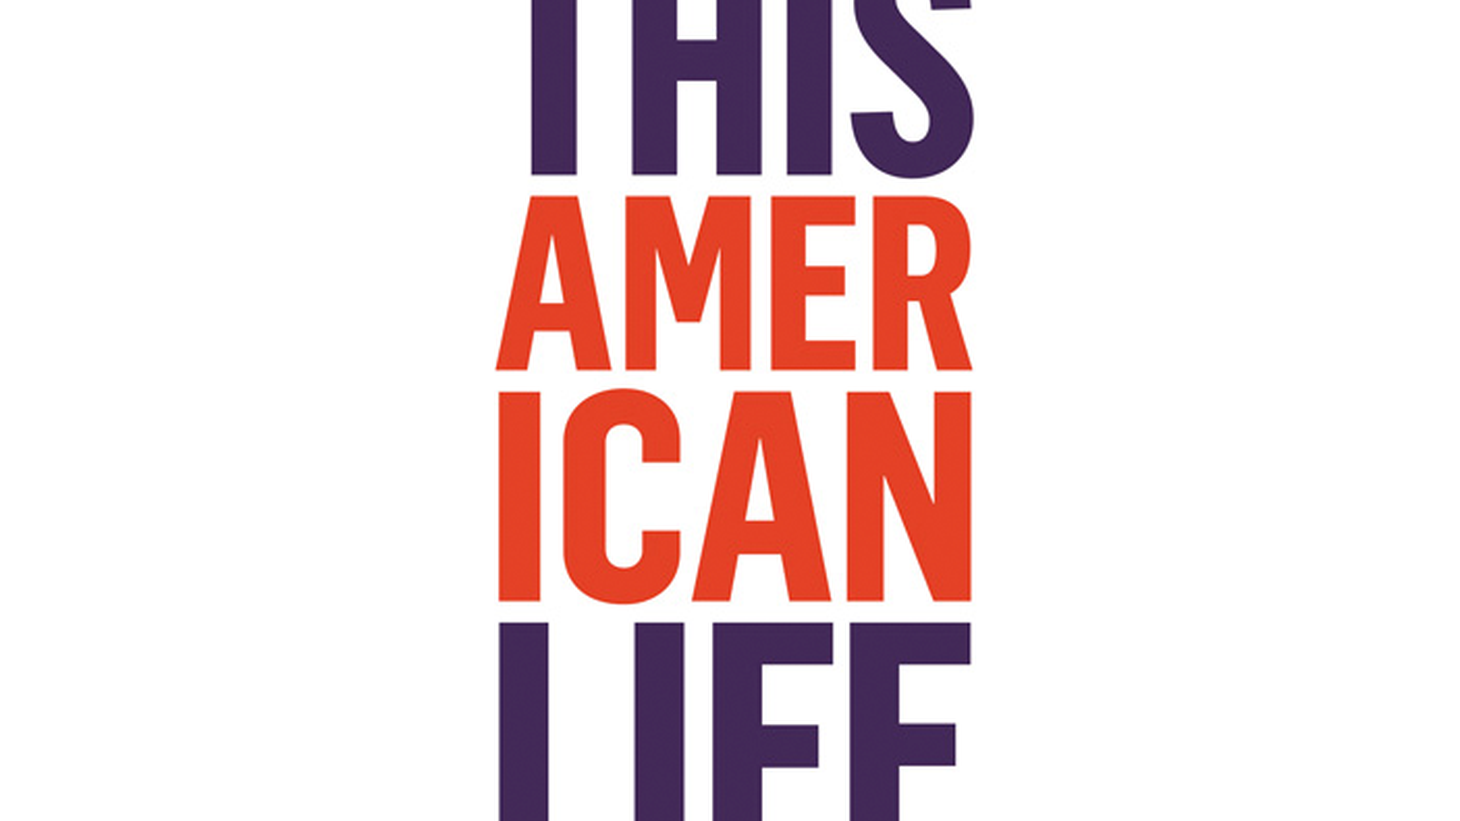 This week's special edition of This American Life features segments from past programs My Experimental Phase, Promised Land and a portion of David Sedaris' CD Live at Carnegie Hall.  The CD is available as a special premium during KCRW's Summer Subscription Drive.